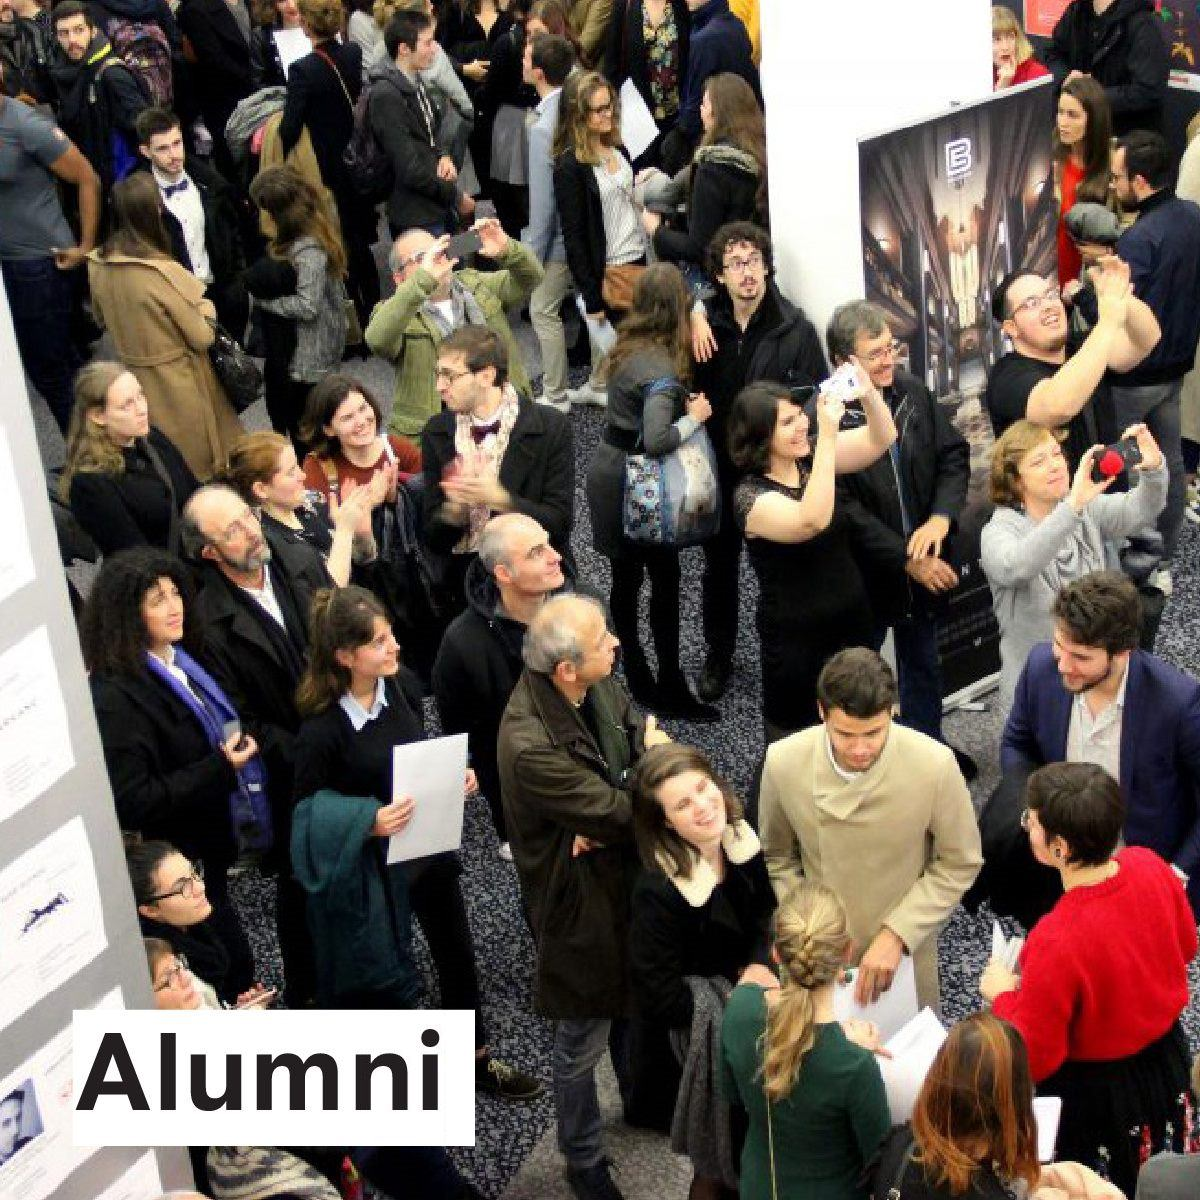 Bellecour Ecole - Alumni